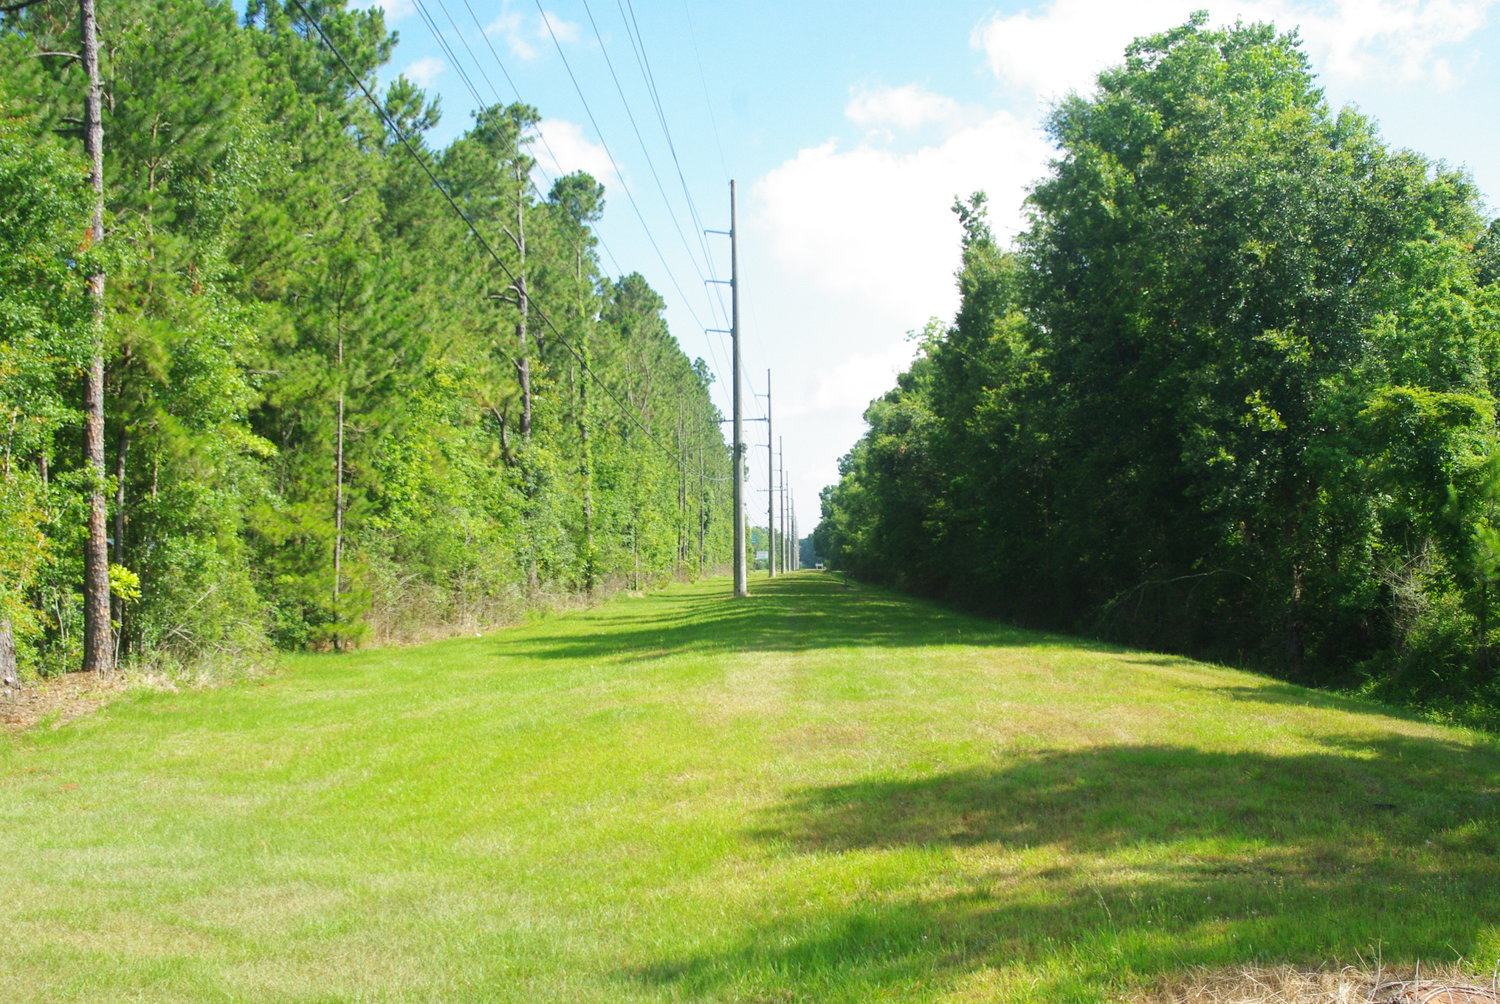 Railroad right of way in Baldwin County could become walking and cycling trails under national Rails to Trails program